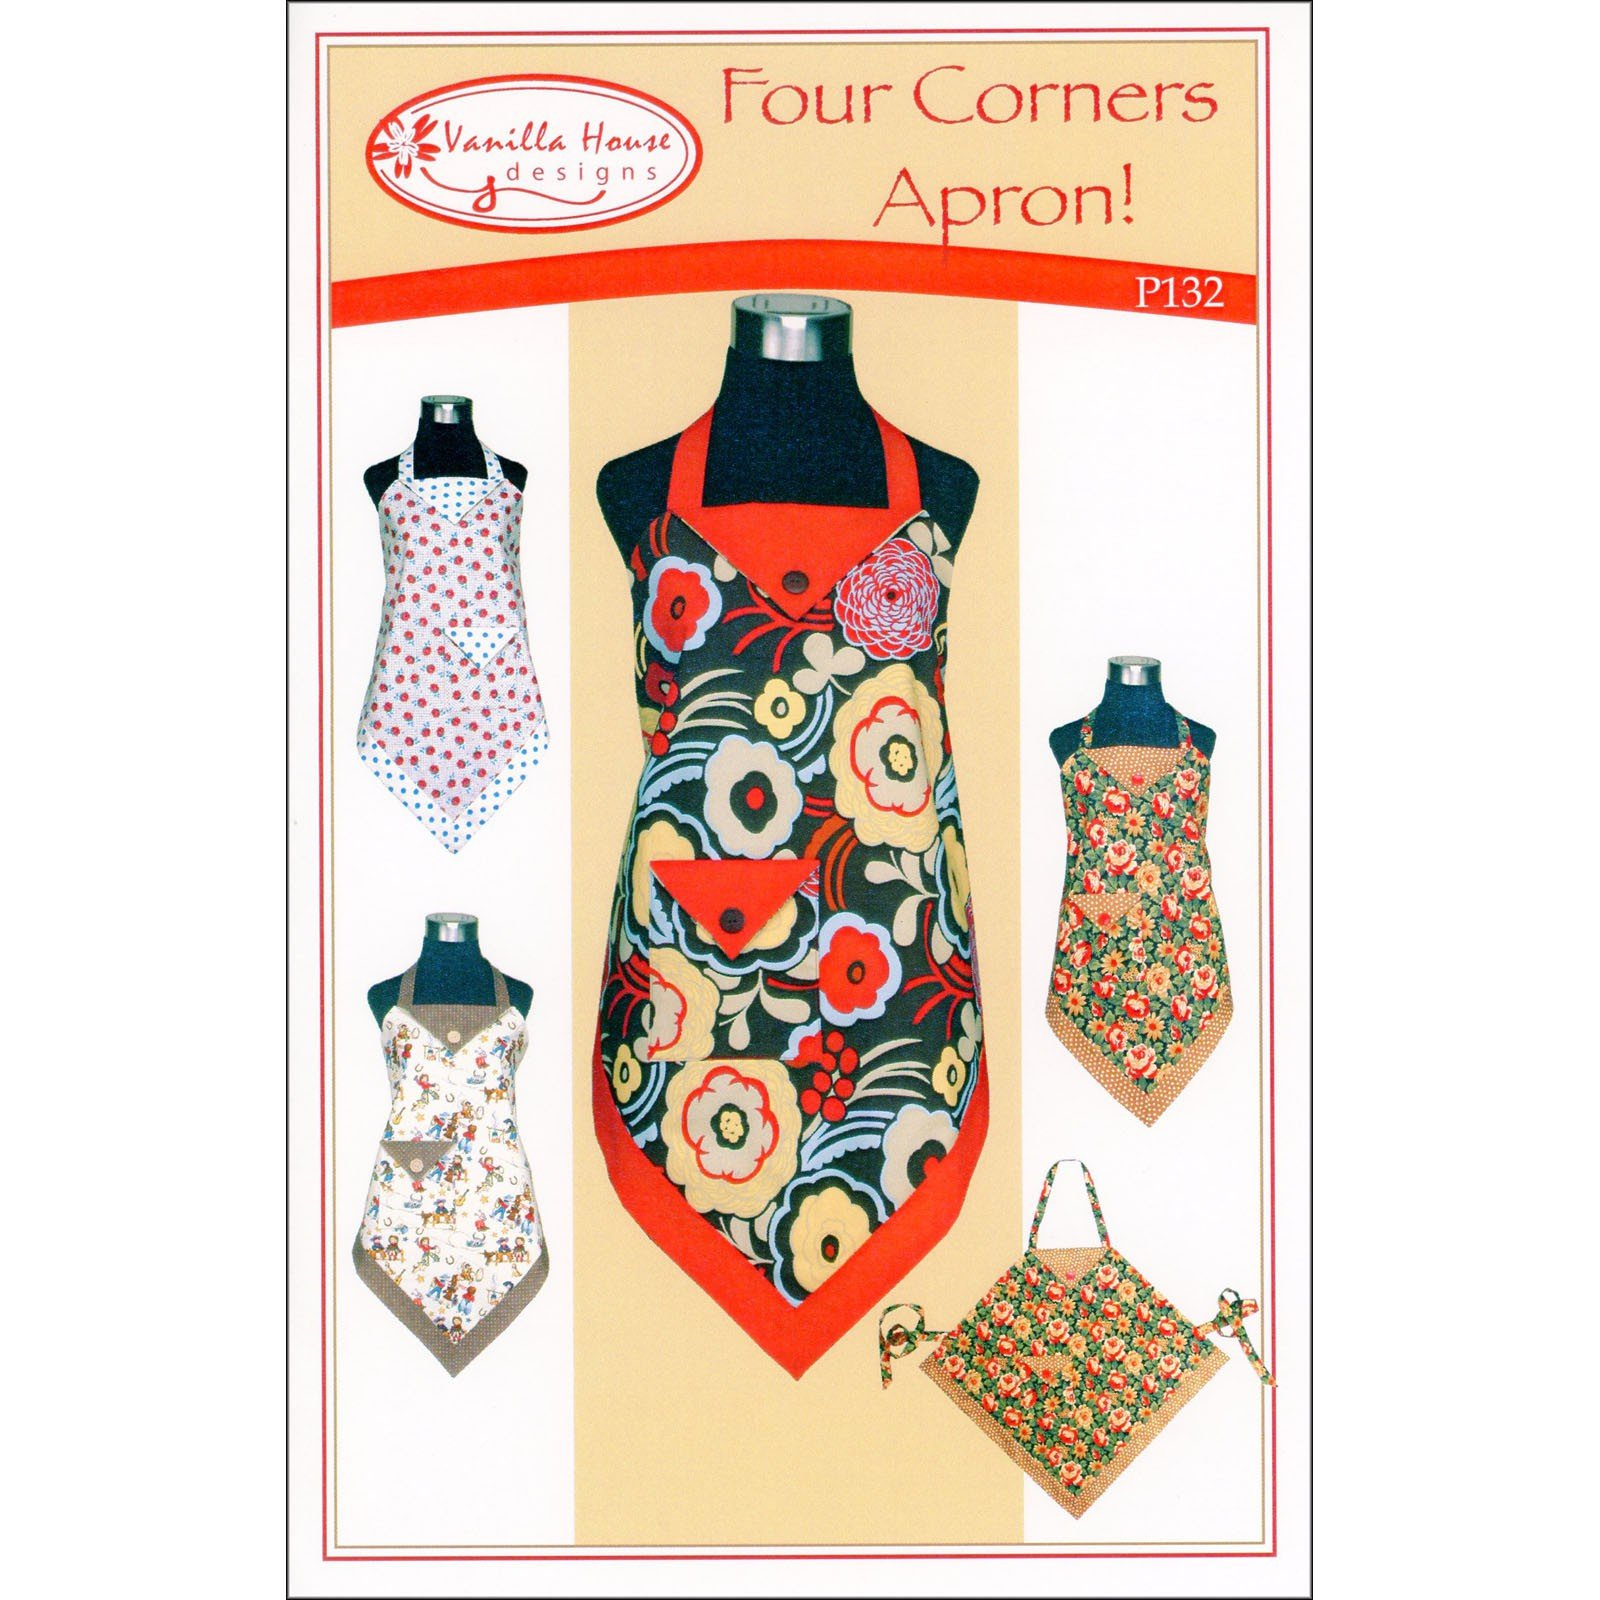 Four Corners Apron Pattern